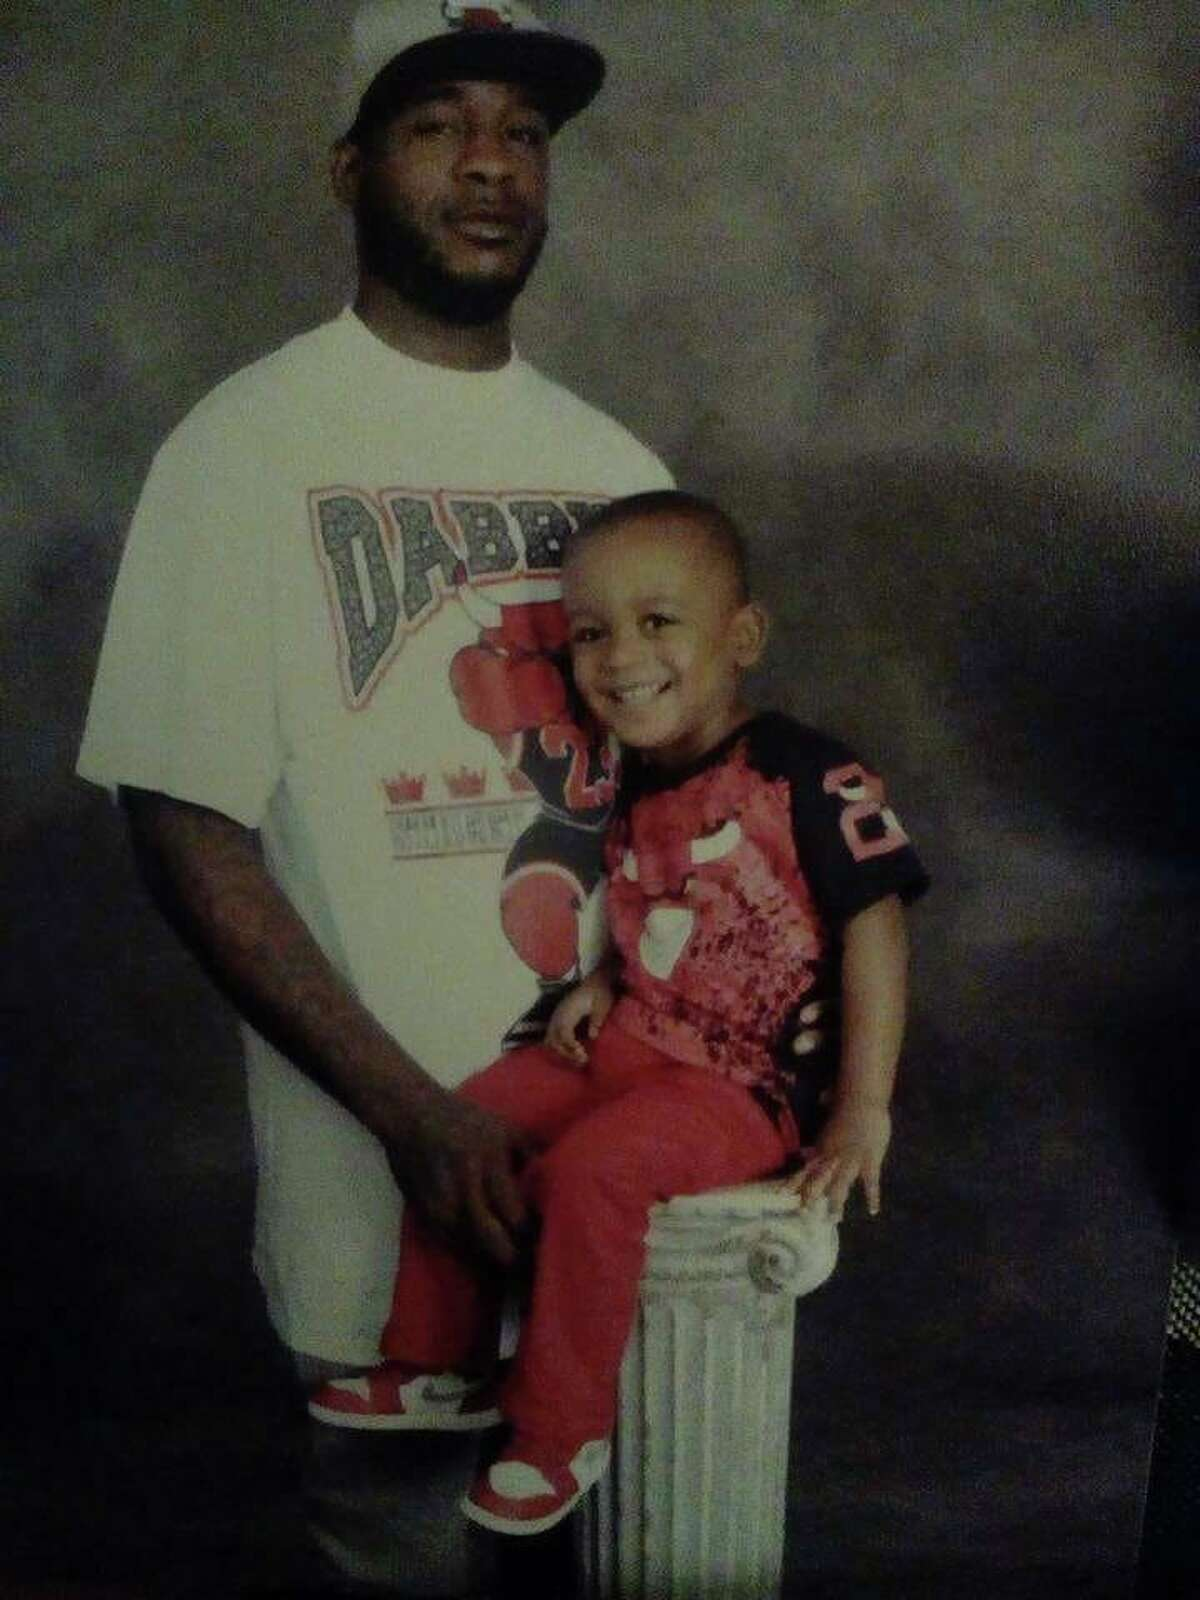 A photo of Danny Ray Thomas, 34, and his son, Damari Ray Thomas. Danny Ray Thomas was shot and killed by a Harris County sheriff's deputy on March 22. An investigation by the sheriff's office and the Houston Police Department into the shooting is ongoing.